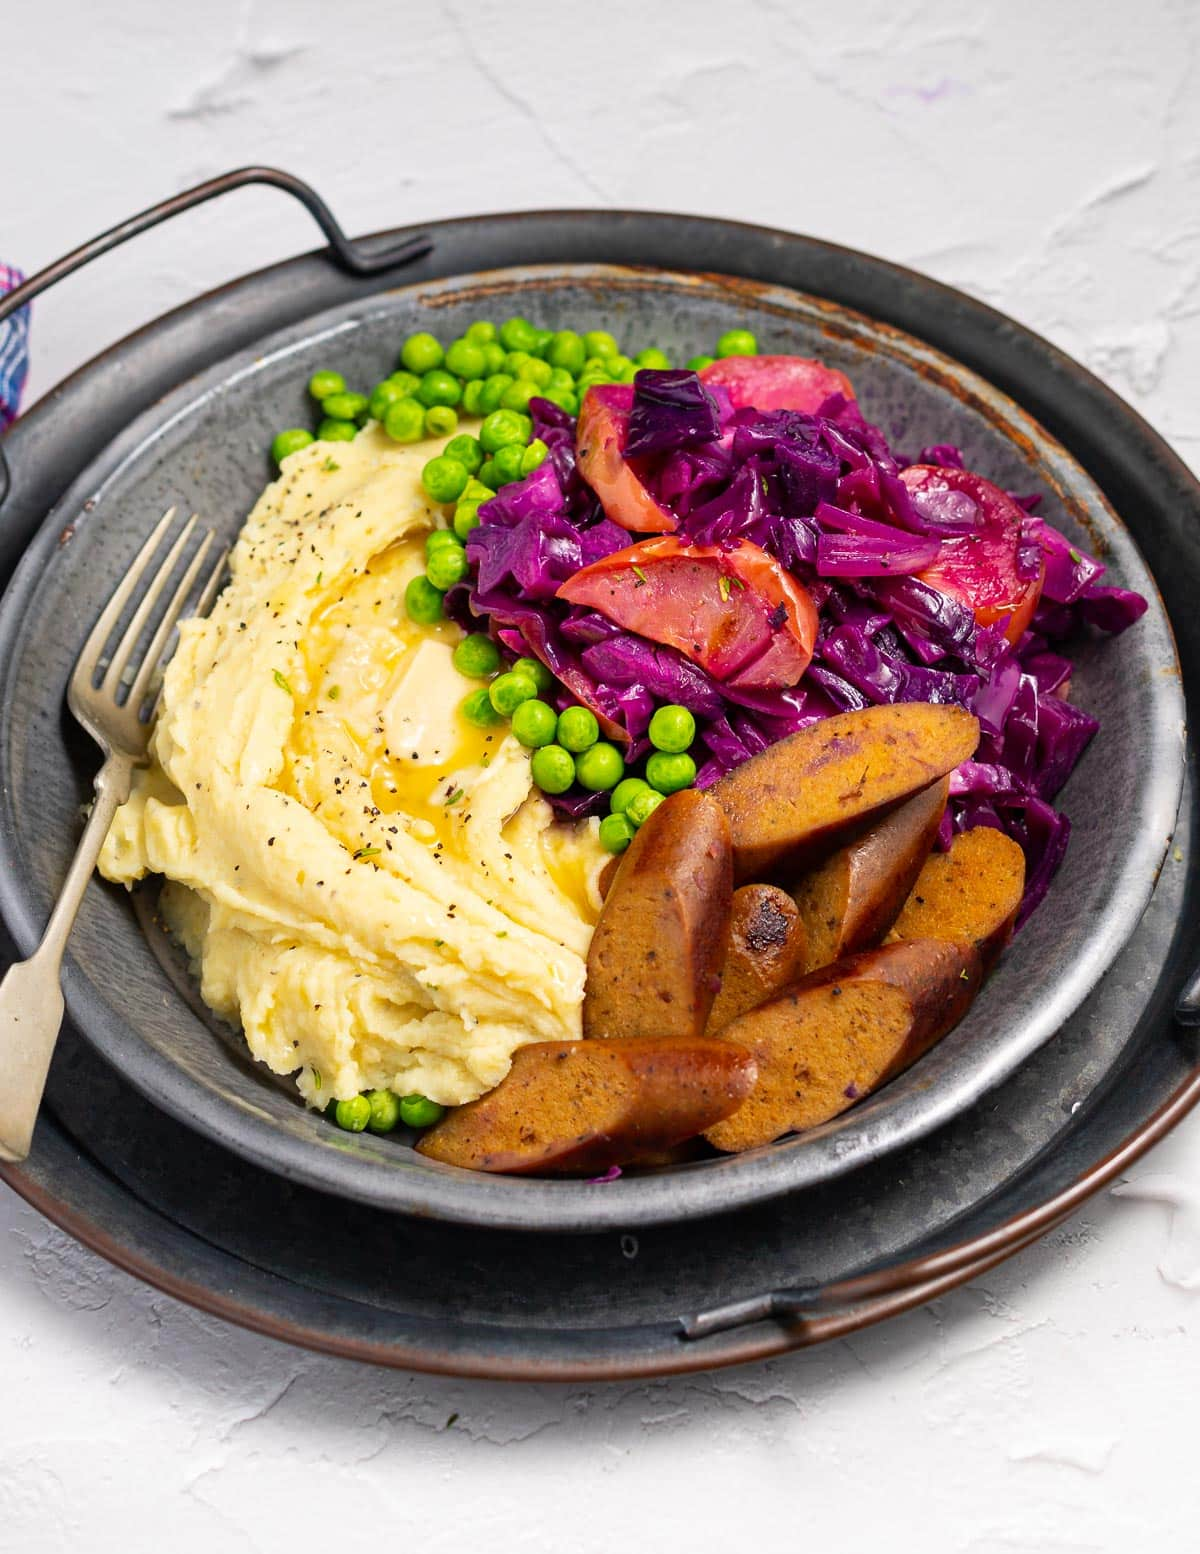 red cabbage, mashed potato and sausages on a metal plate